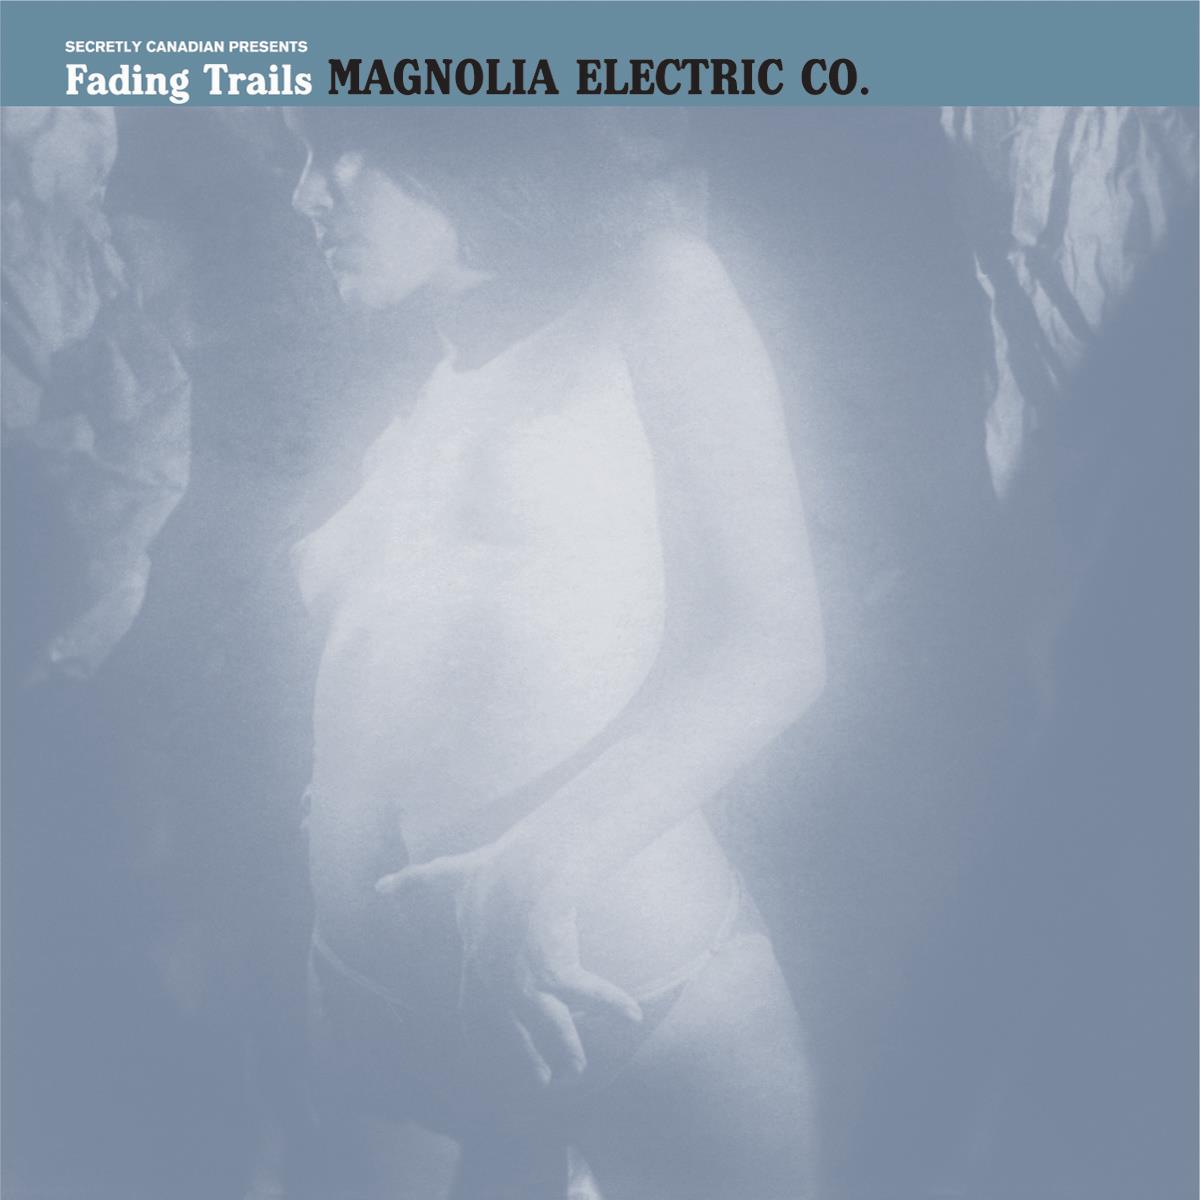 Magnolia Electric Co. - Fading Trails [LP]